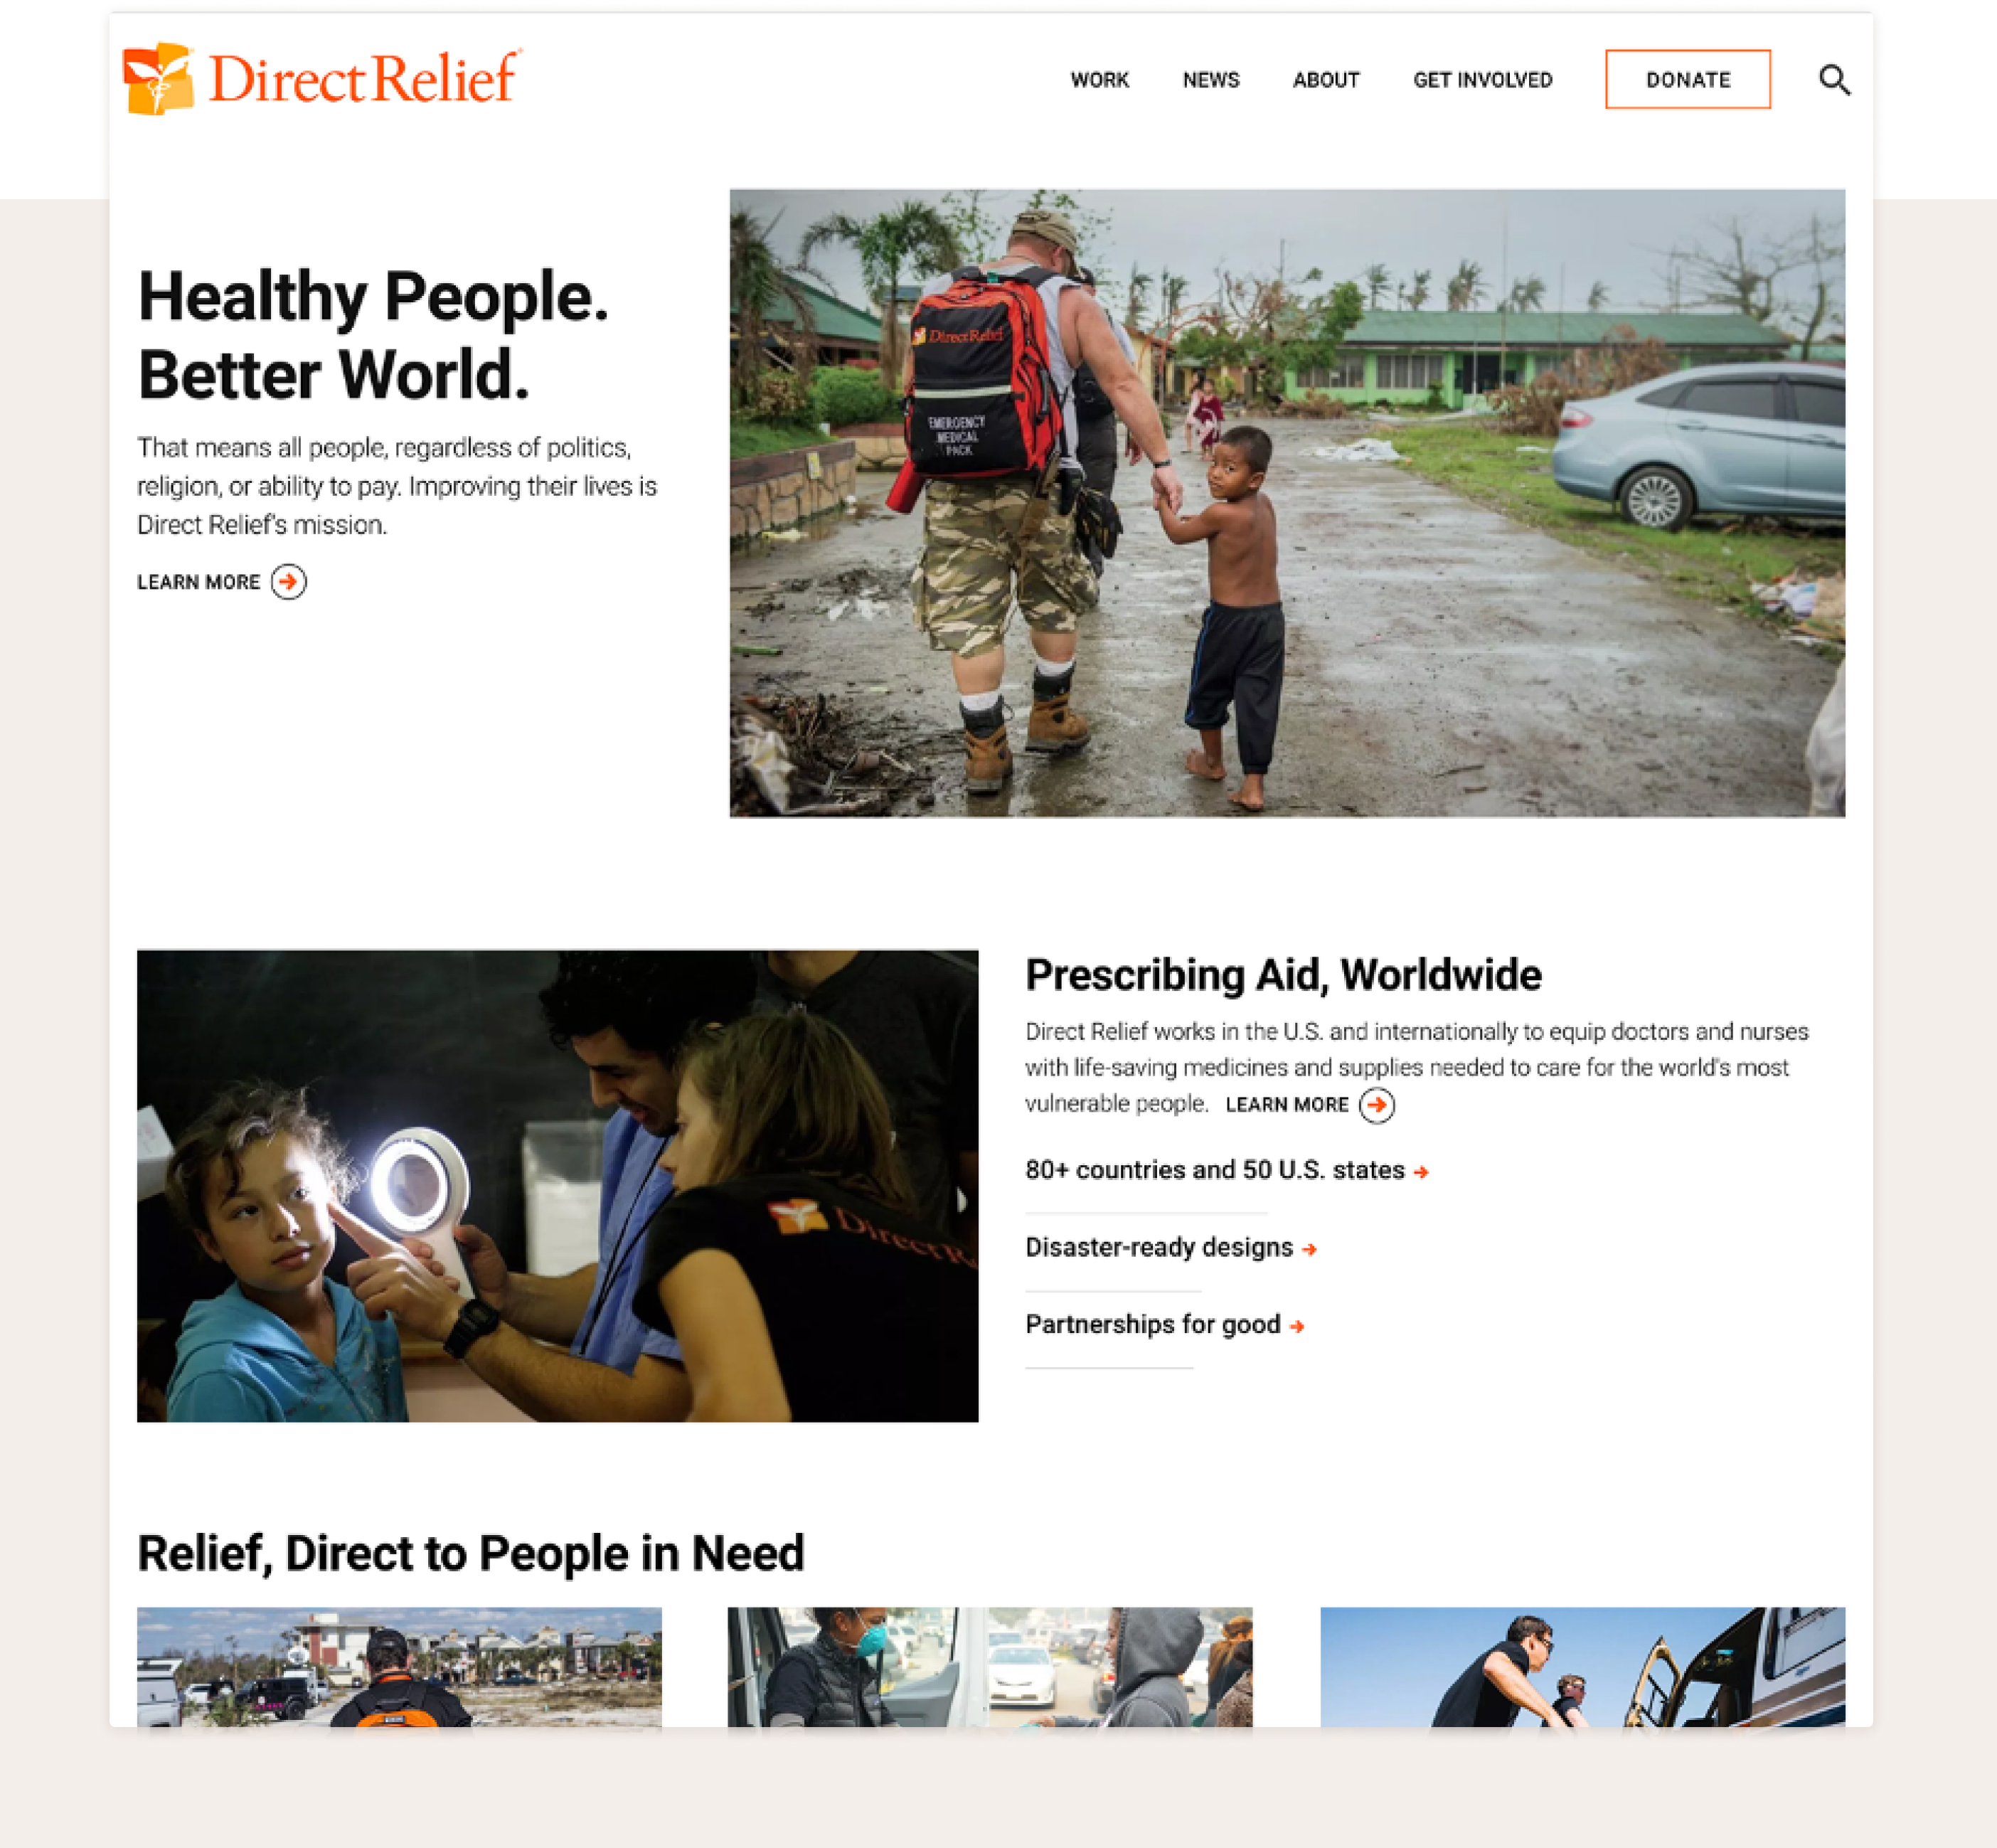 The main page of Direct Relief with navigation, featured article, and additional content